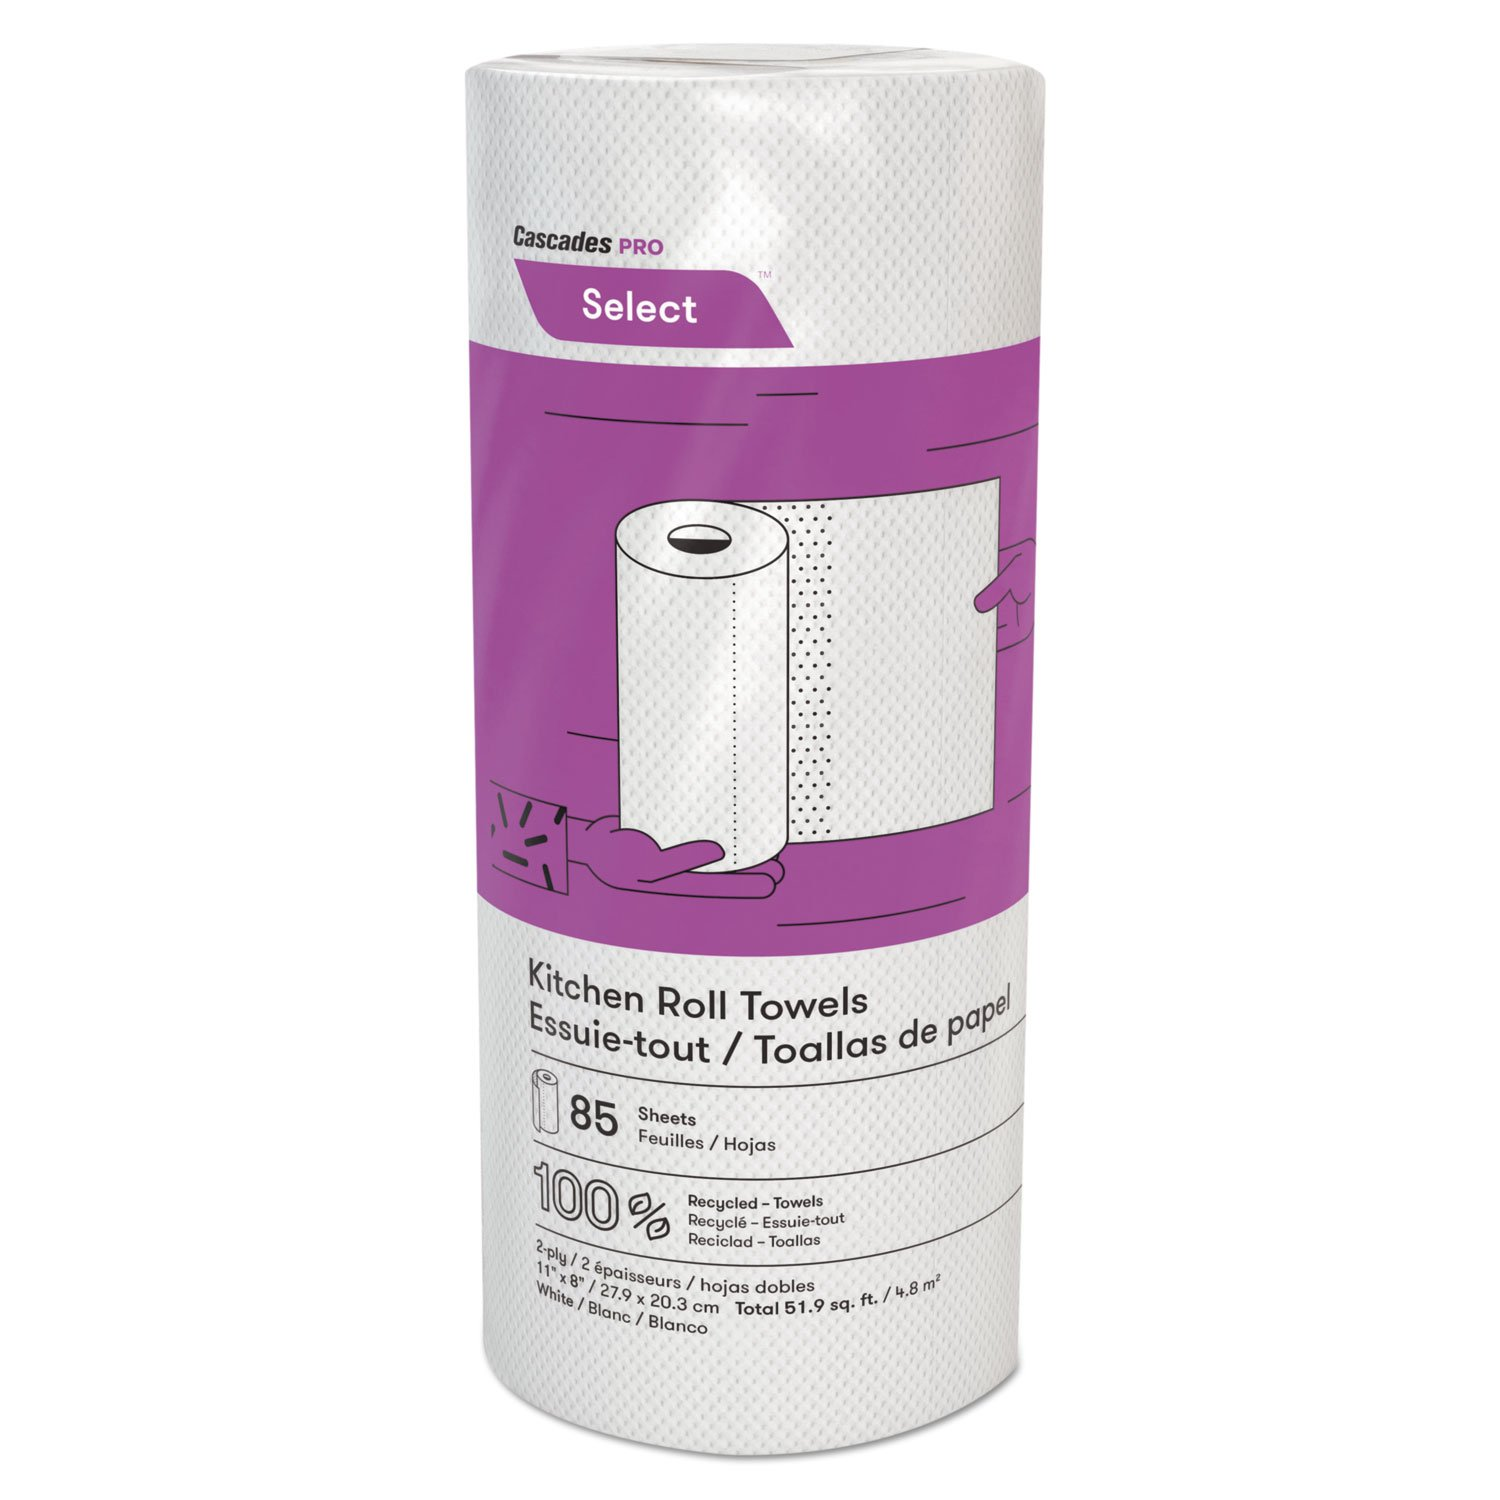 Cascades PRO K085 Select Kitchen Roll Towels, 2-Ply, 8 x 11, 85/Roll, 30/Carton